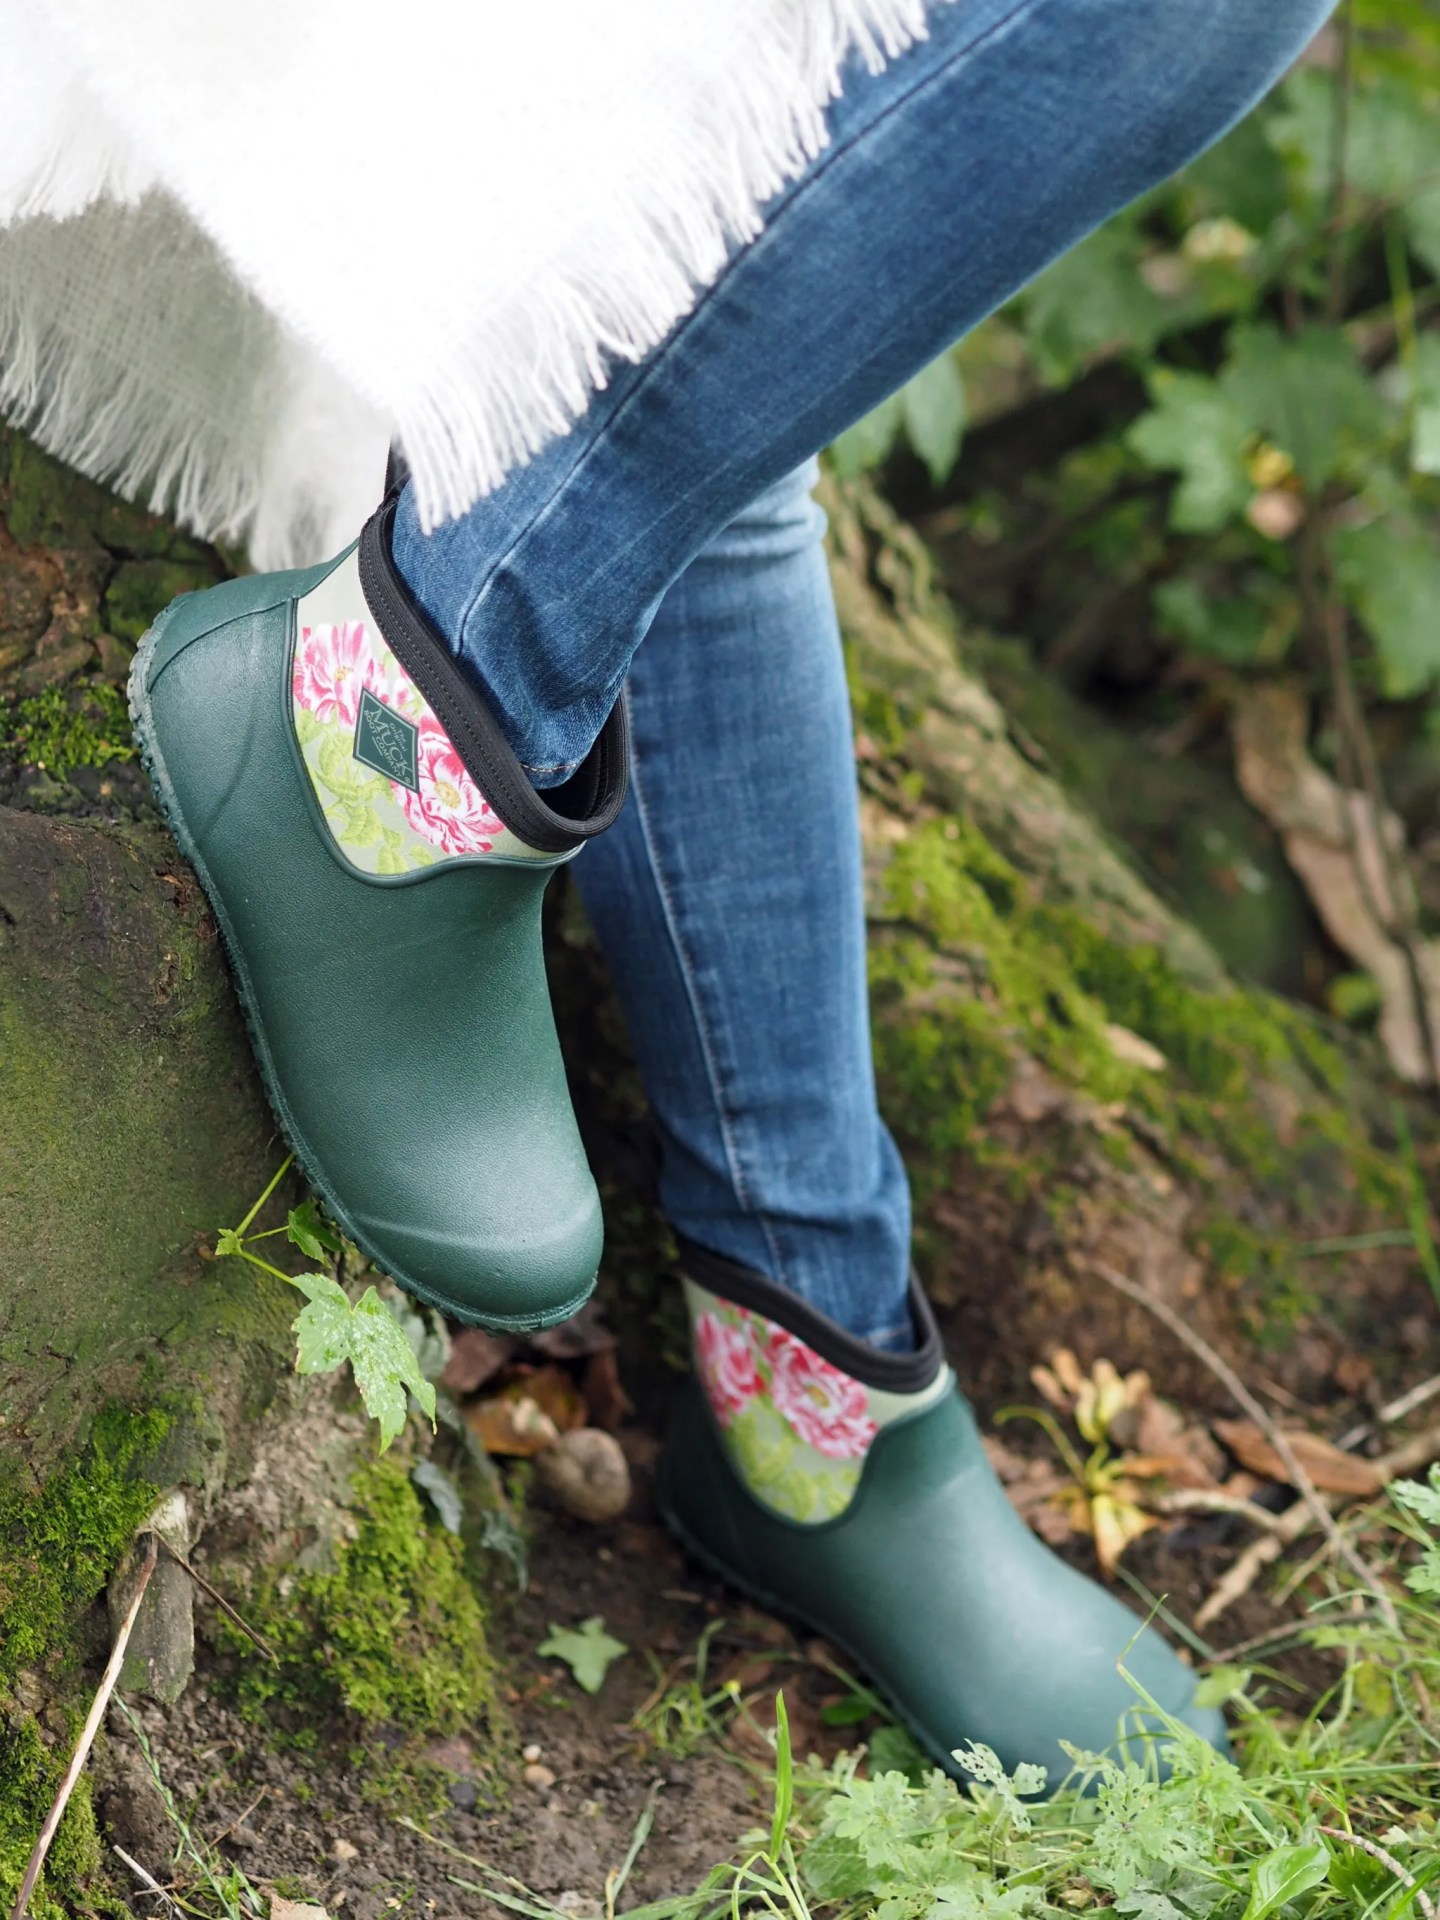 what-lizzy-loves-cream-mohair-serape-jeans-short-green-wellies-wellingtons-muck-boots